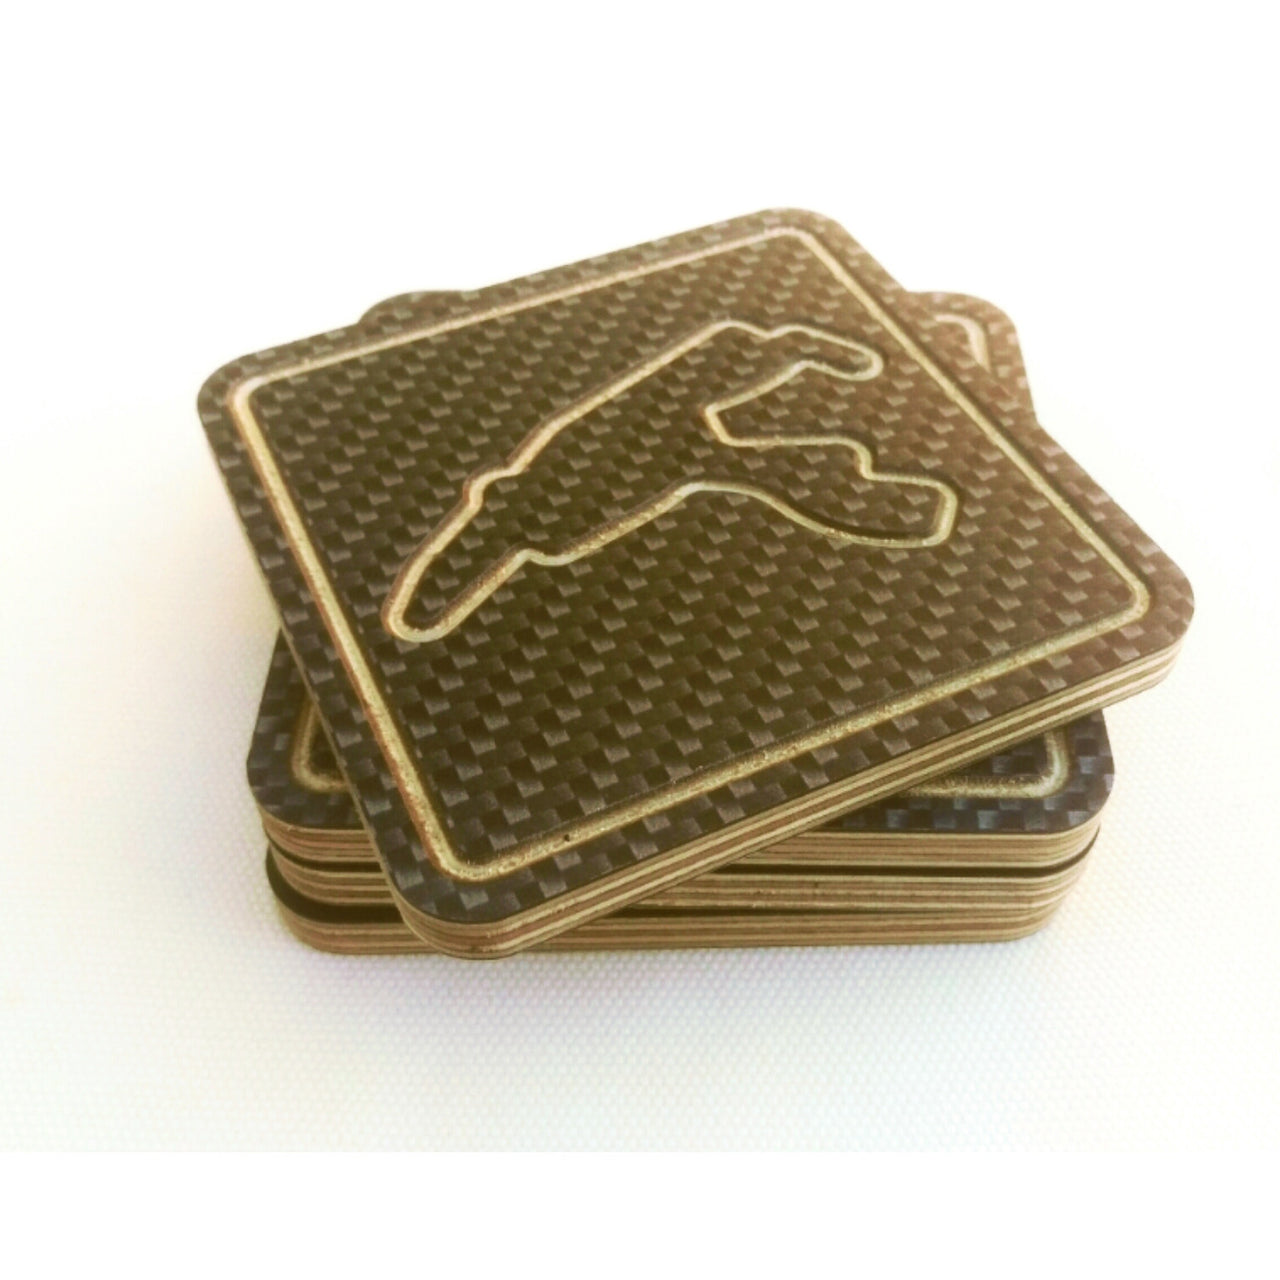 Coaster Set of 6 - Carbon Fibre